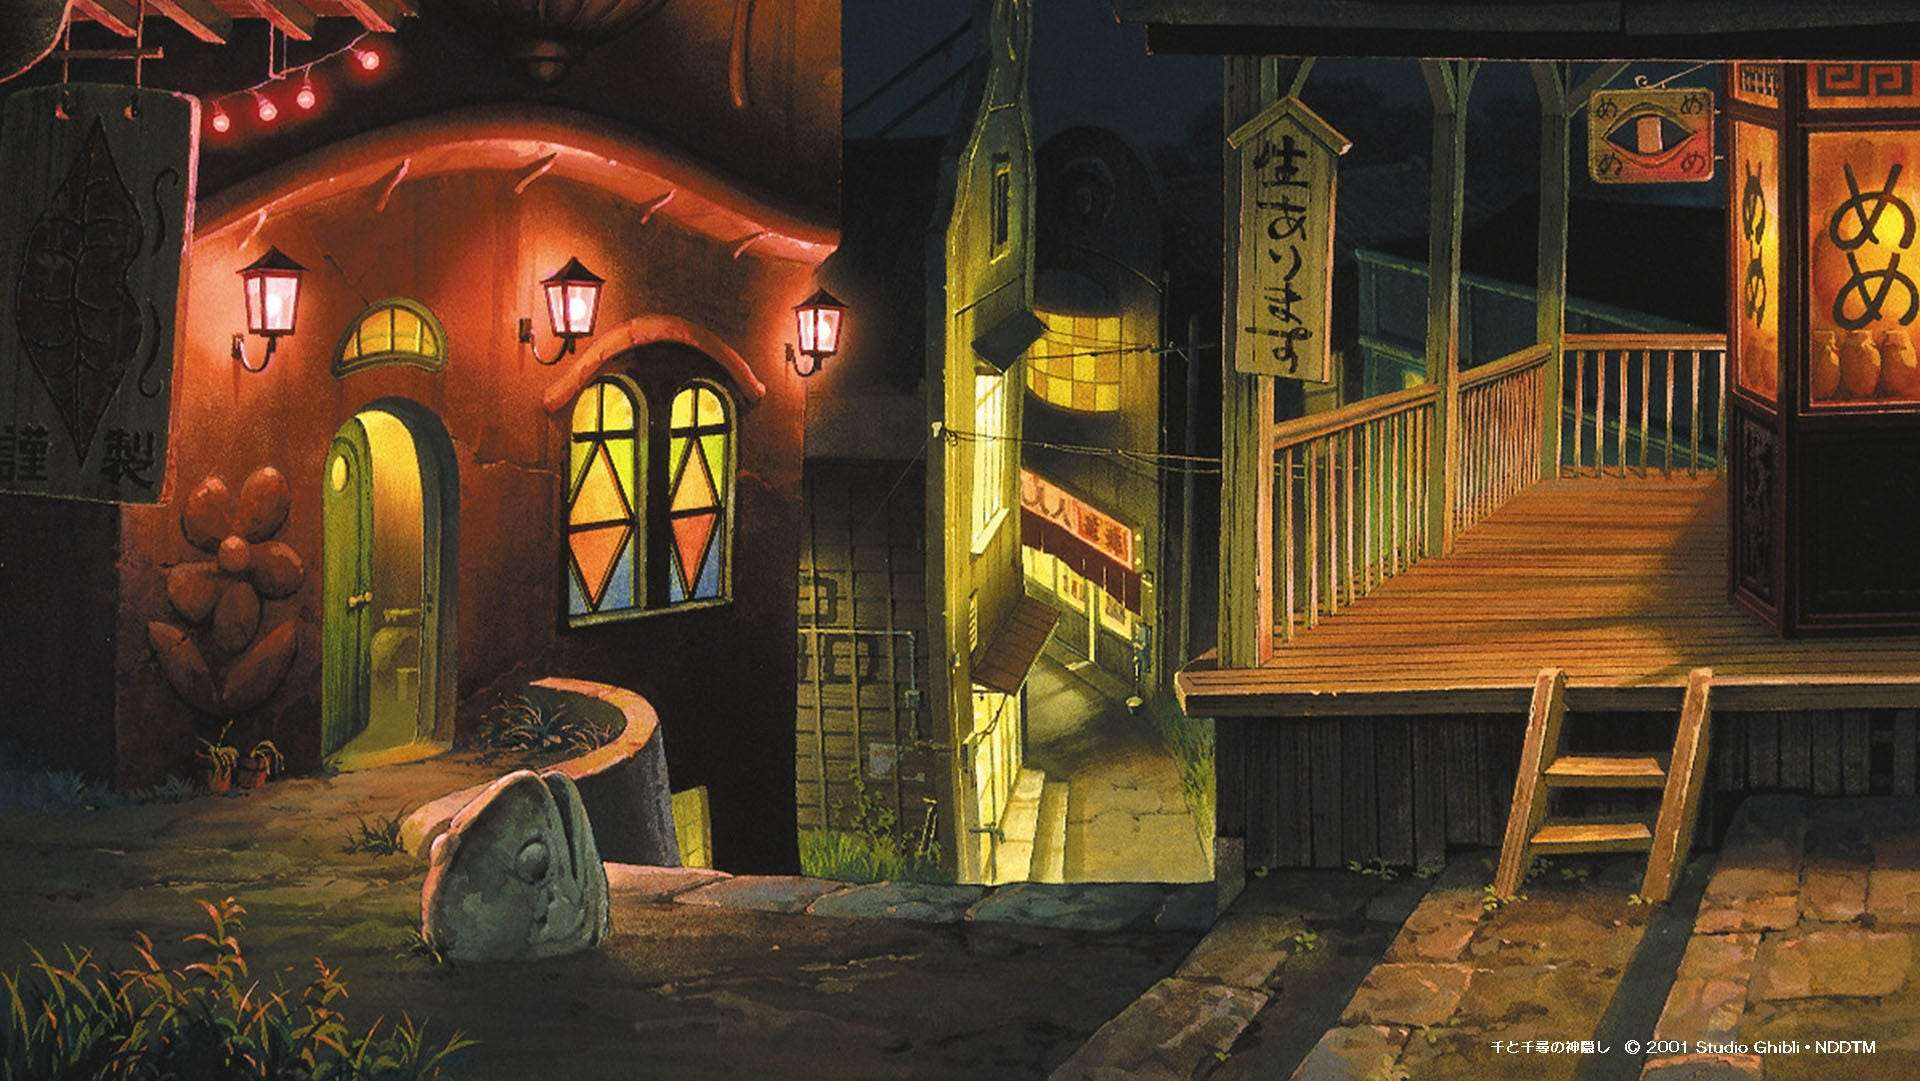 The Animation Studio Behind Totoro And Spirited Away Just Released 16 Free Zoom Backgrounds So You Can Work From Home Inside A Fantasy World Business Insider India